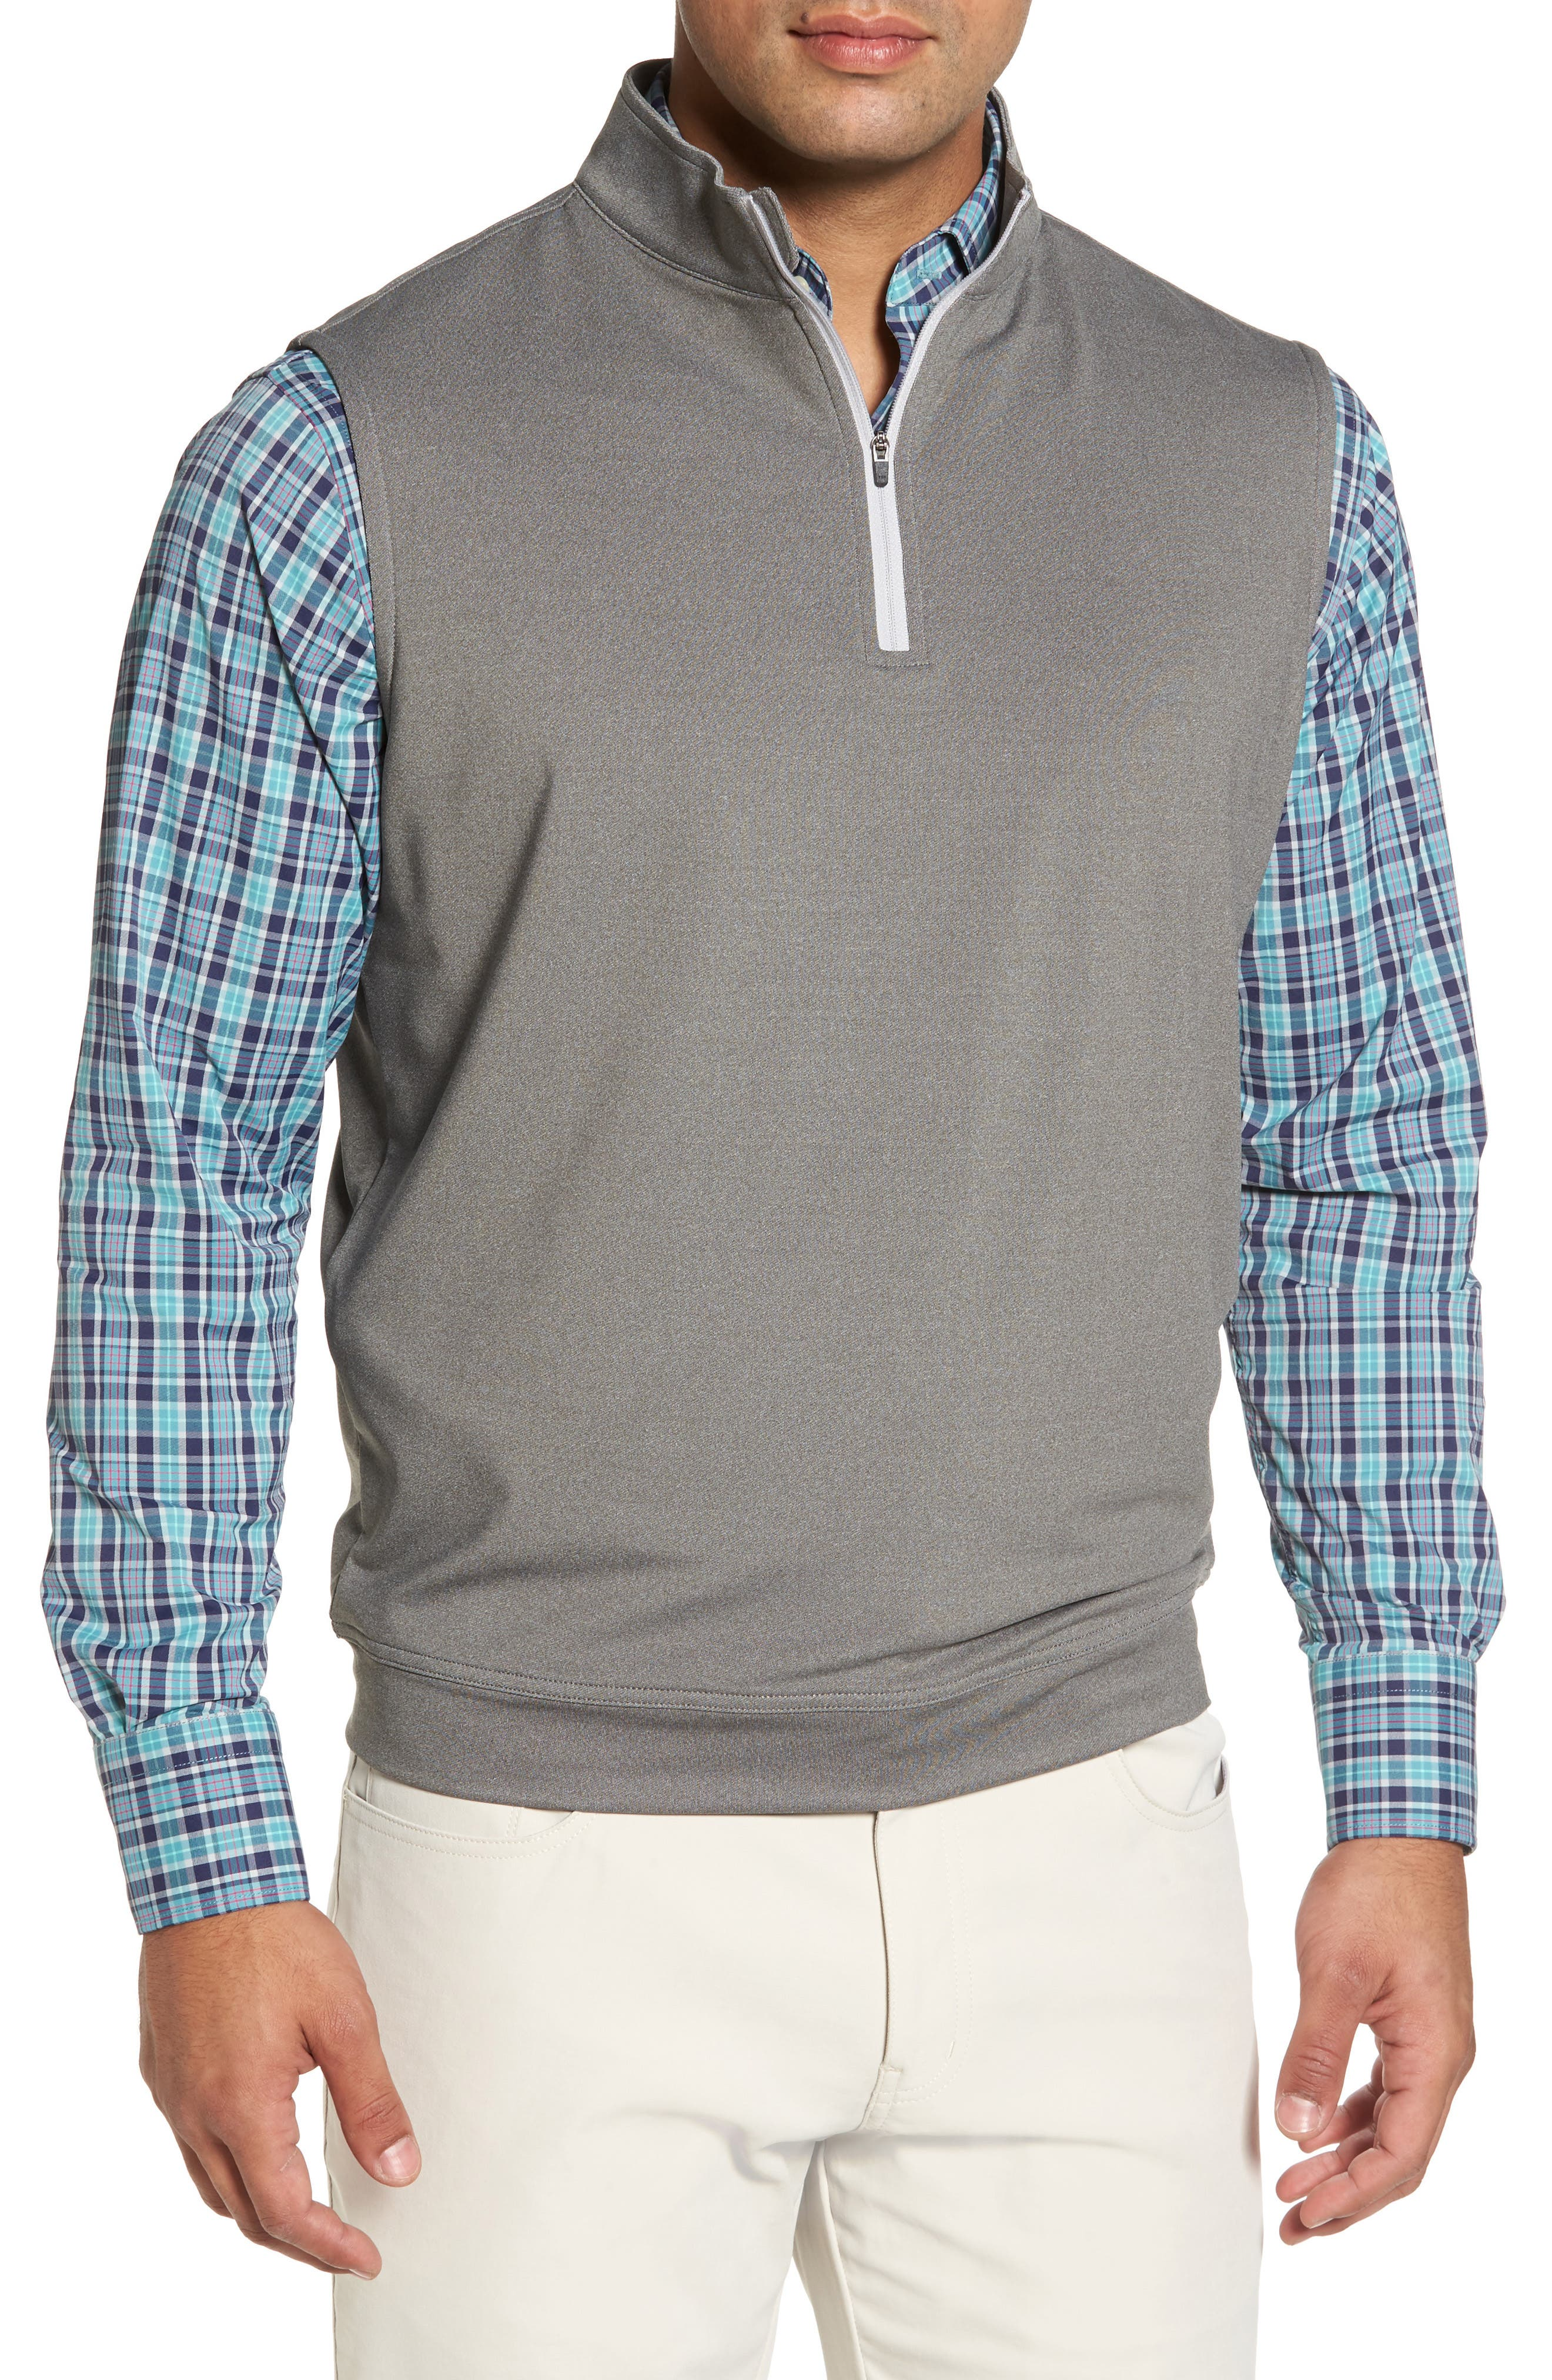 Peter Millar Galway Stretch Terry Quarter Zip Vest